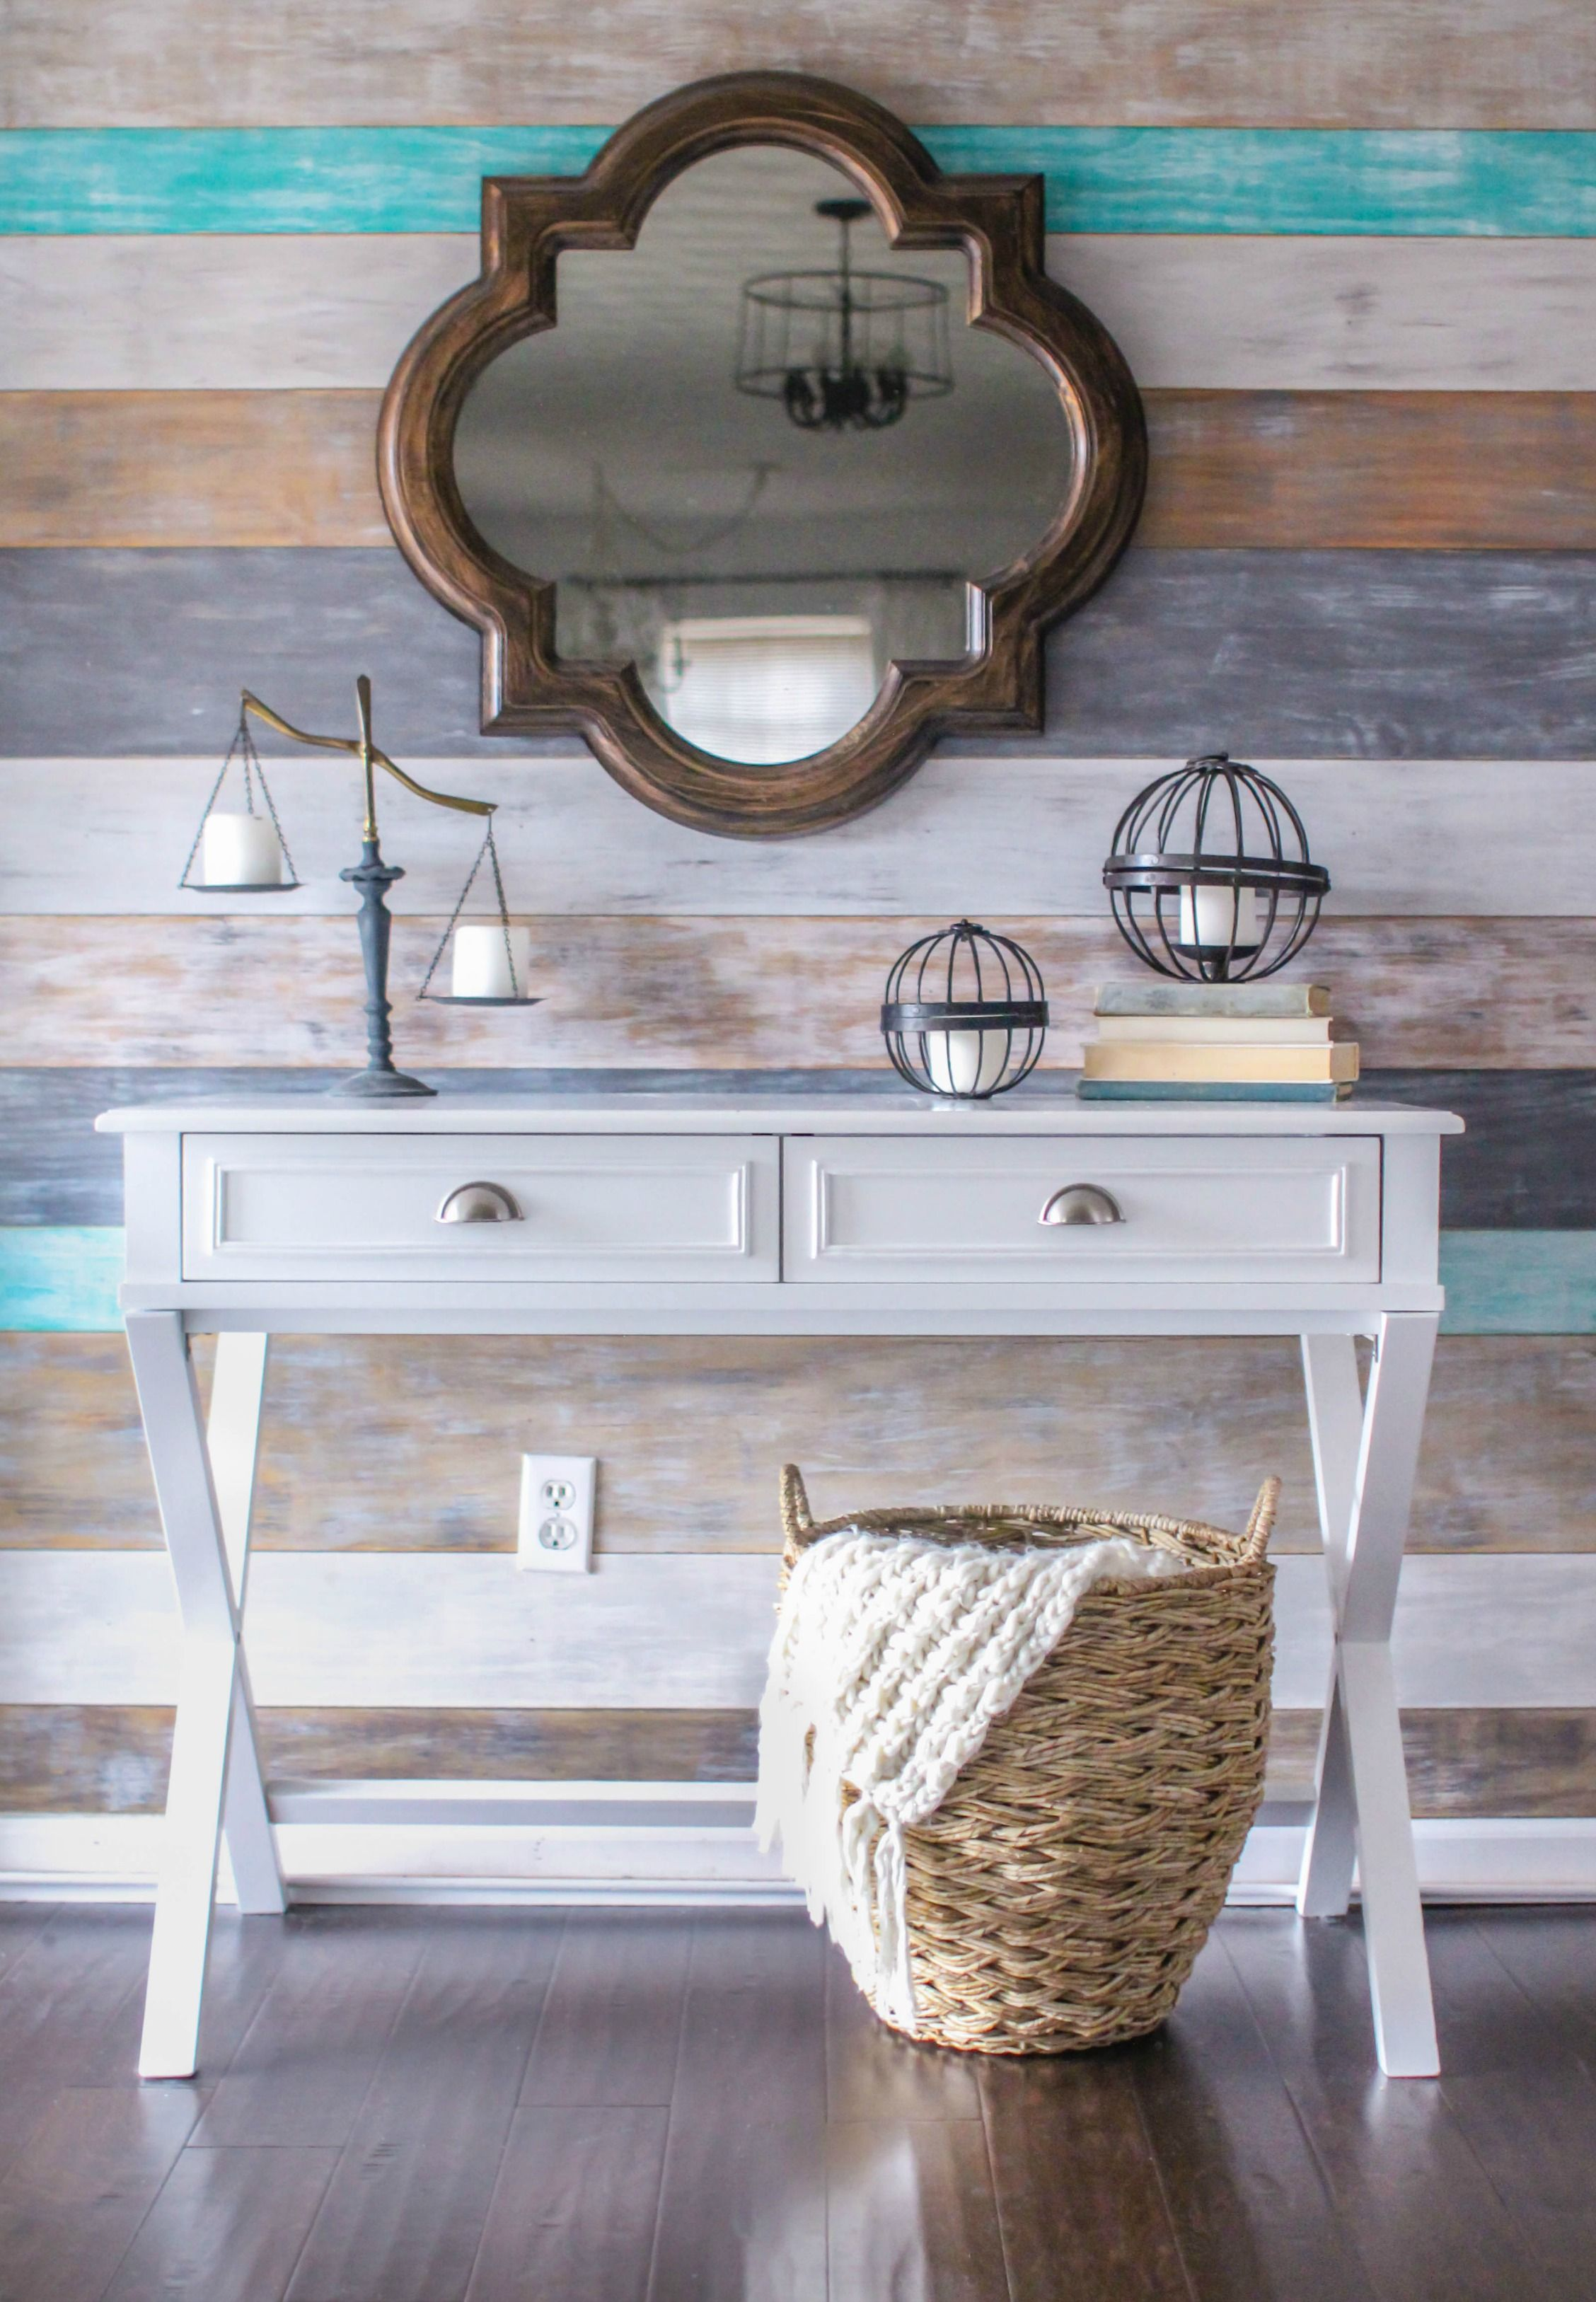 How to Organize Your Home with Baskets by Carrie of Lovely Etc created exclusively for Discover, a blog by World Market #DiscoverWorldMarket